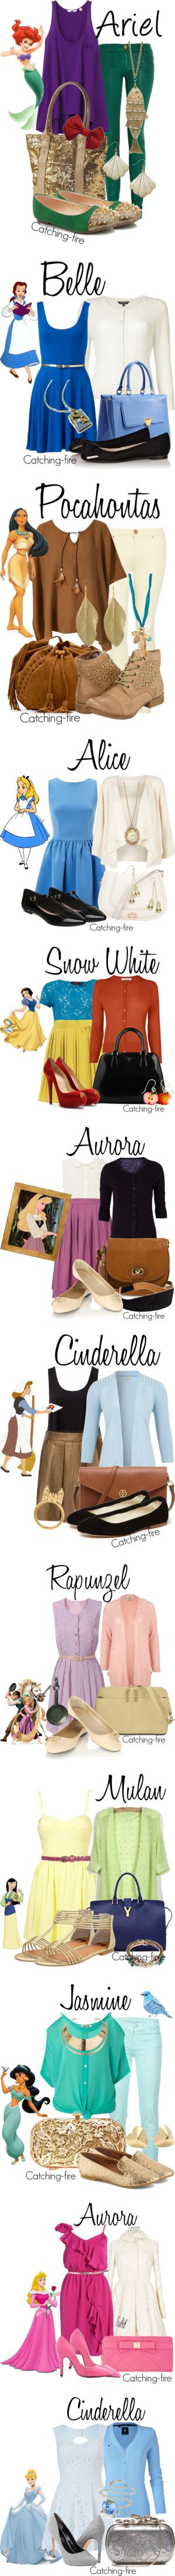 """Disney"" by catching-fire ❤ liked on Polyvore"